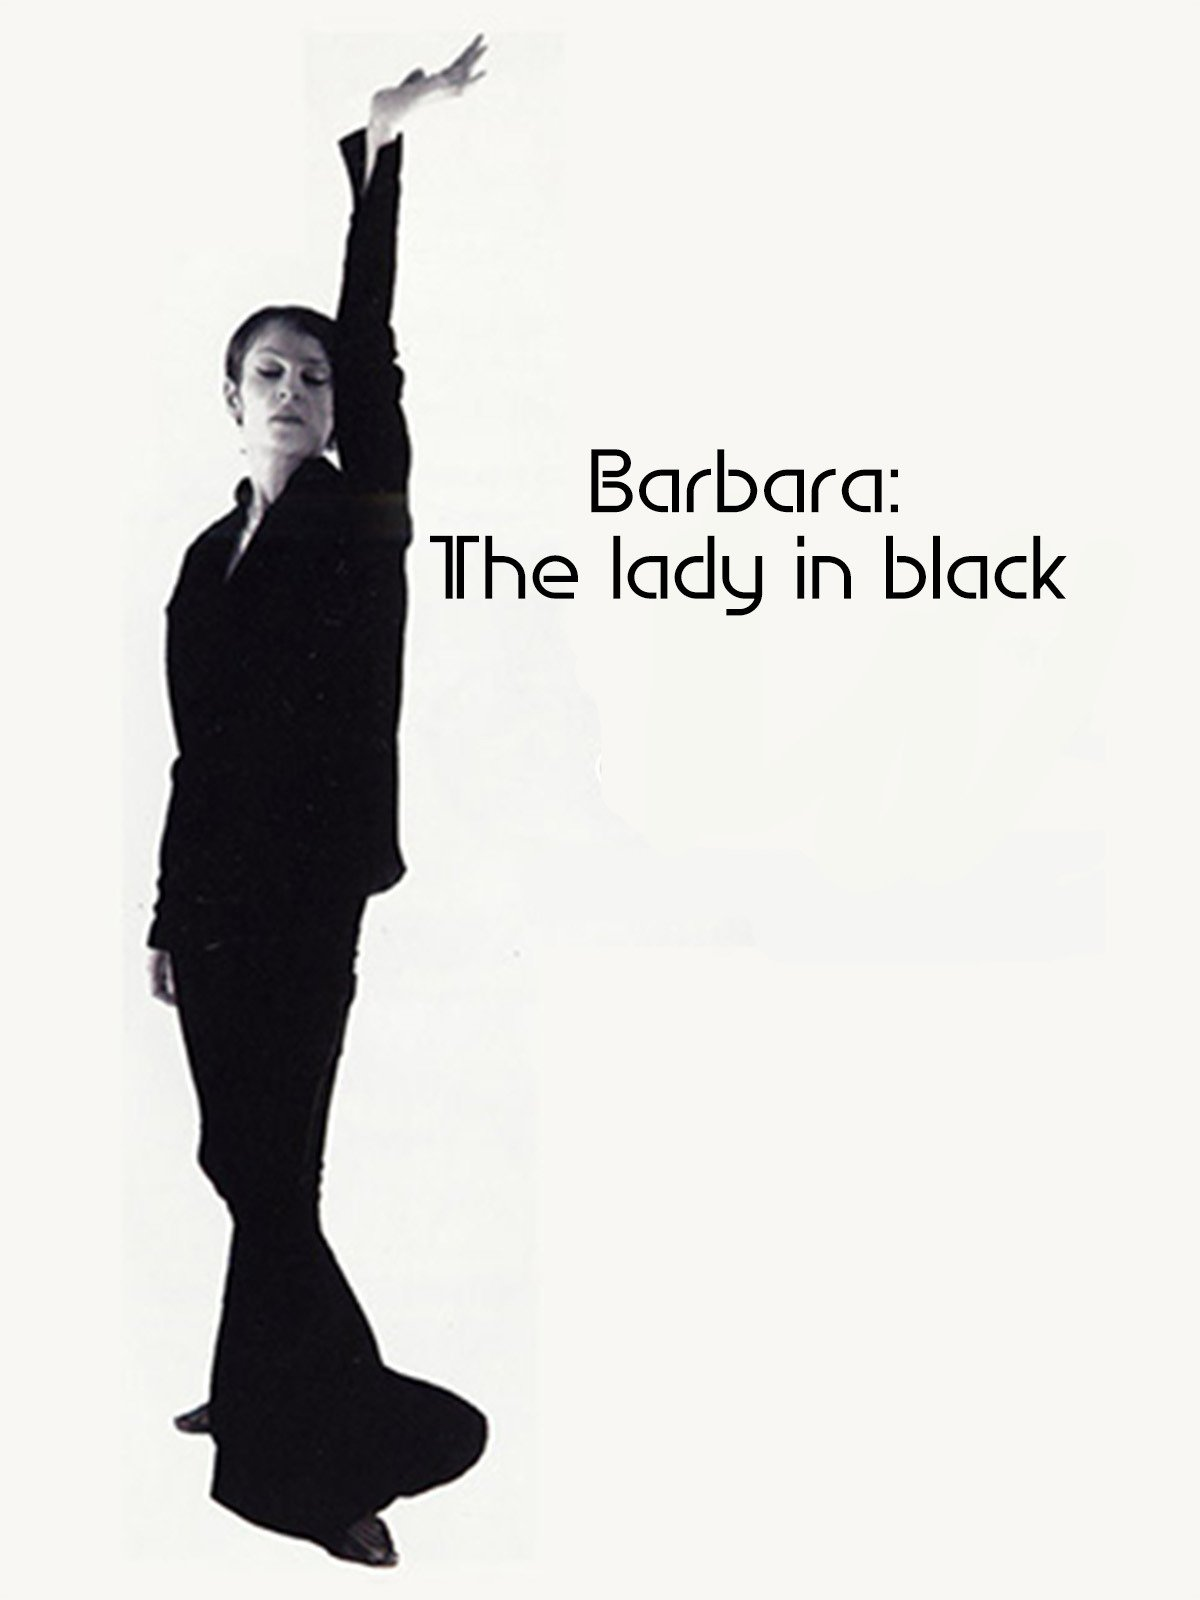 Barbara: The lady in black